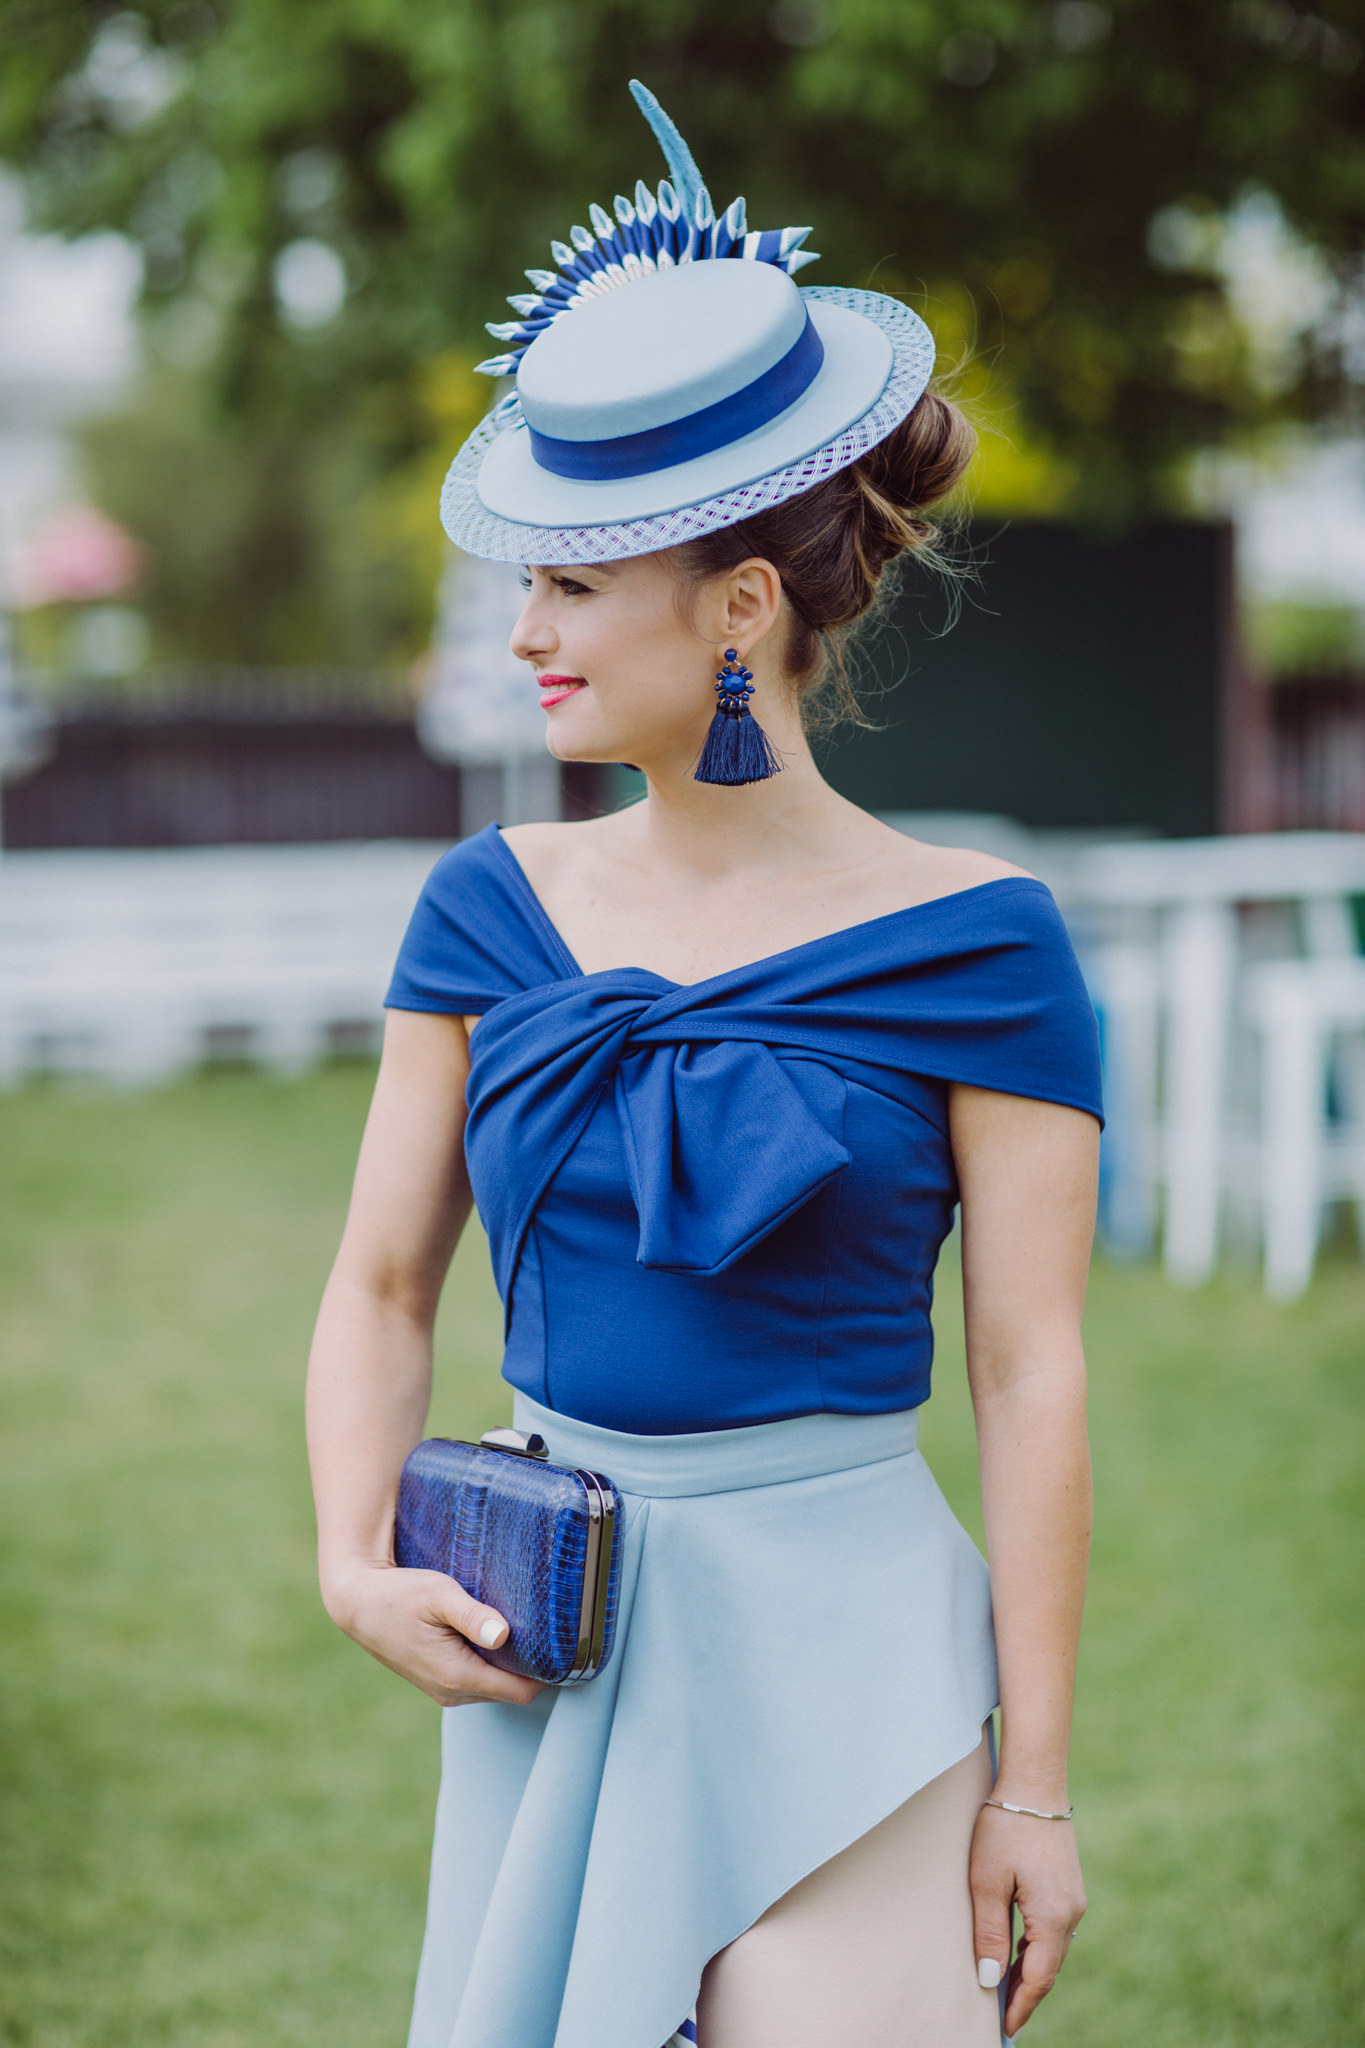 Blue Fashions on the field dress - boater hat - roksander dress